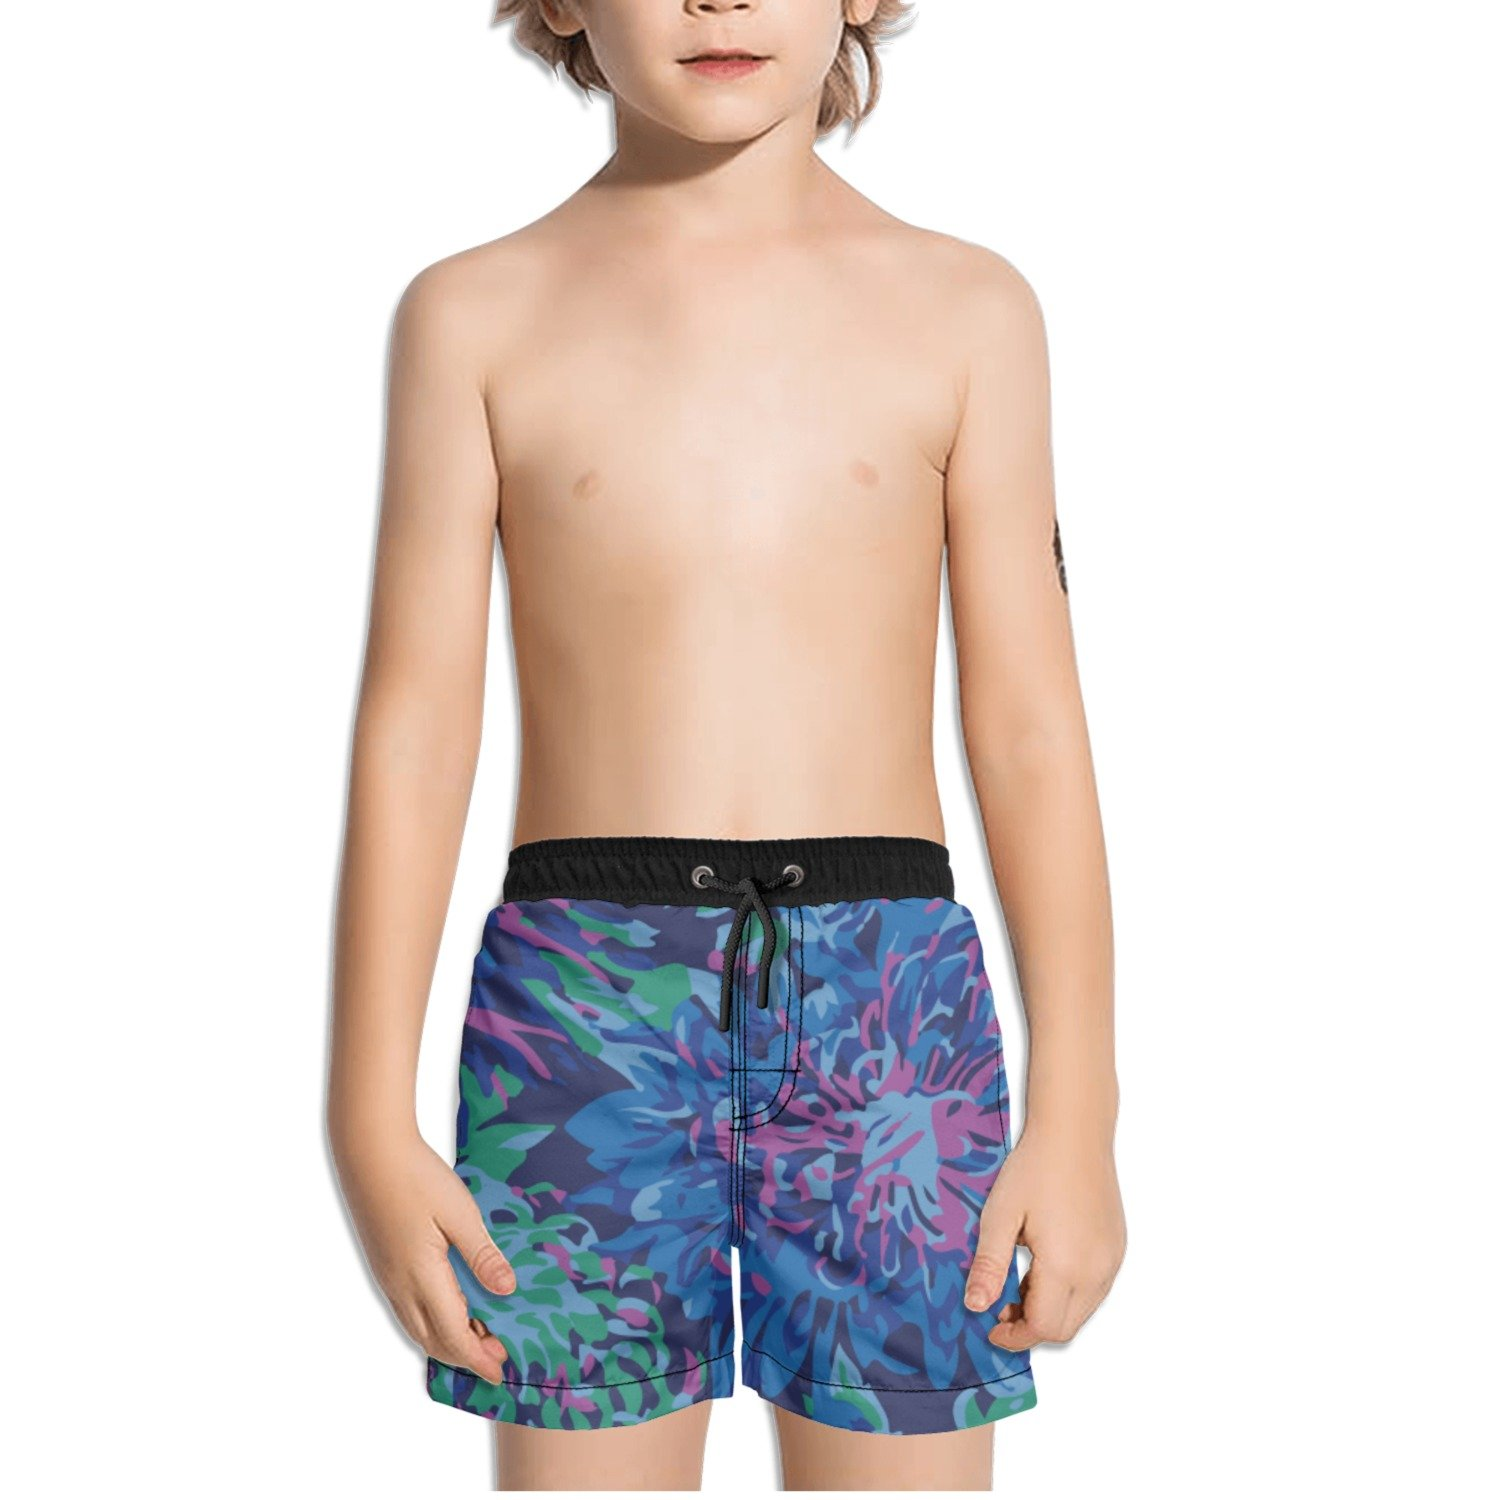 Ouxioaz Boys Swim Trunk Japanese Chrysanthemum Blue Beach Board Shorts